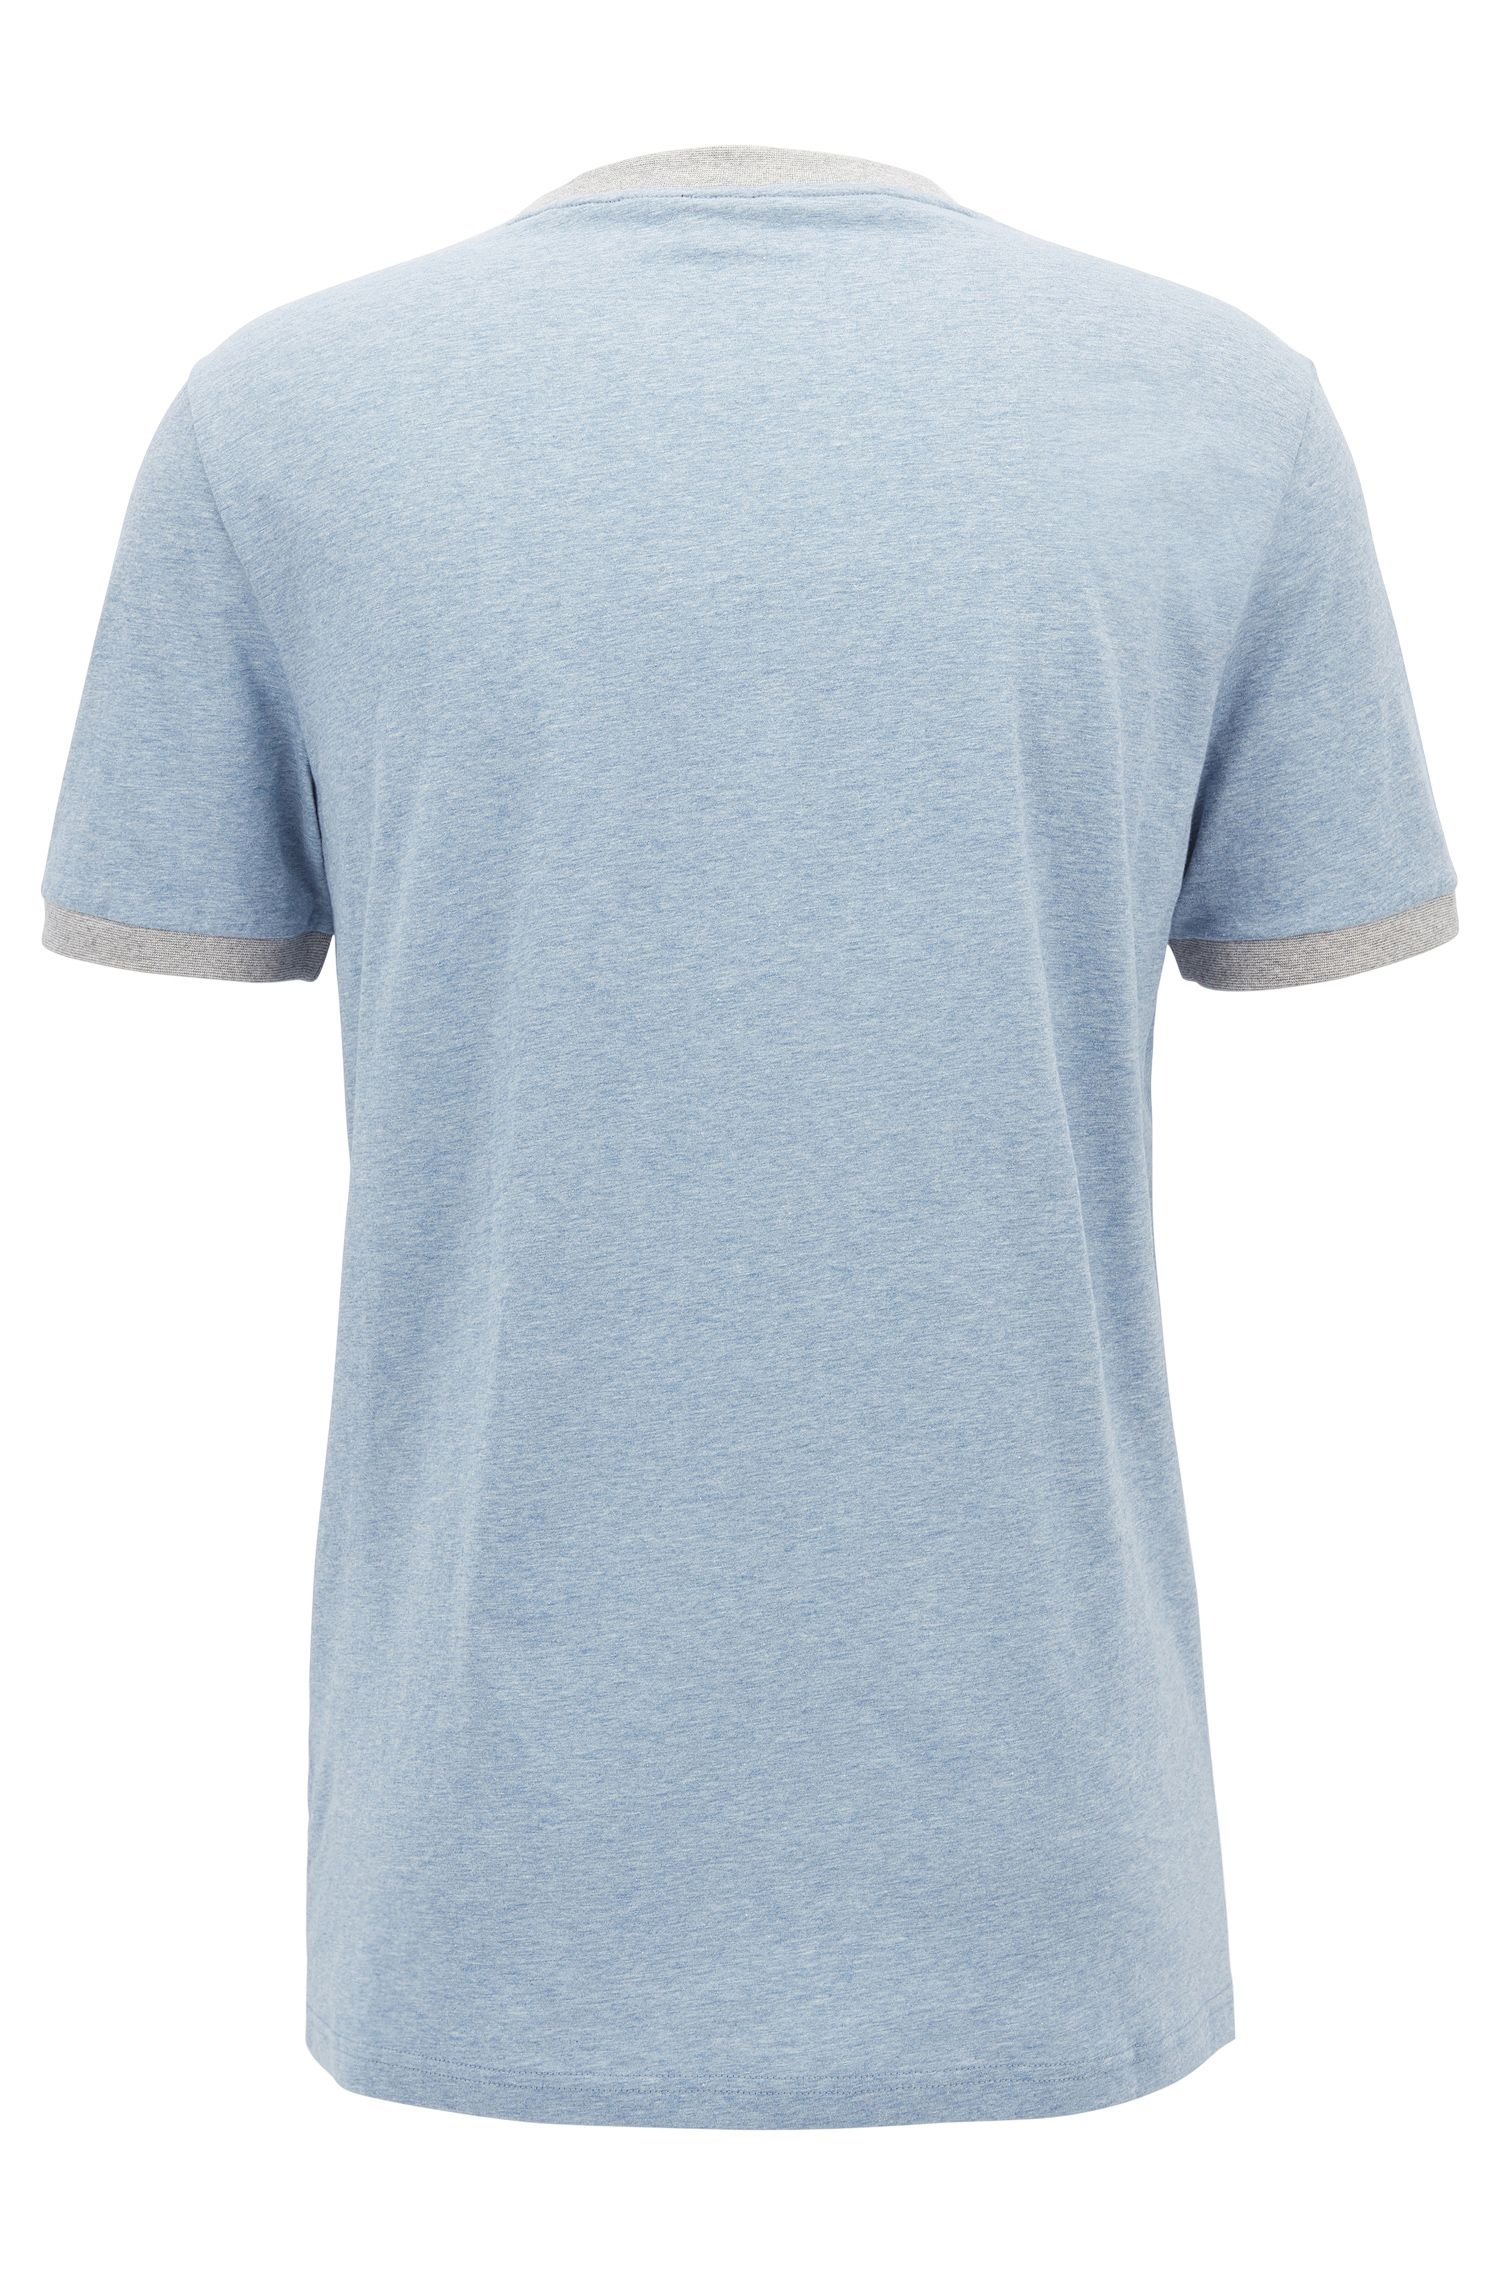 T-shirt Relaxed Fit en coton